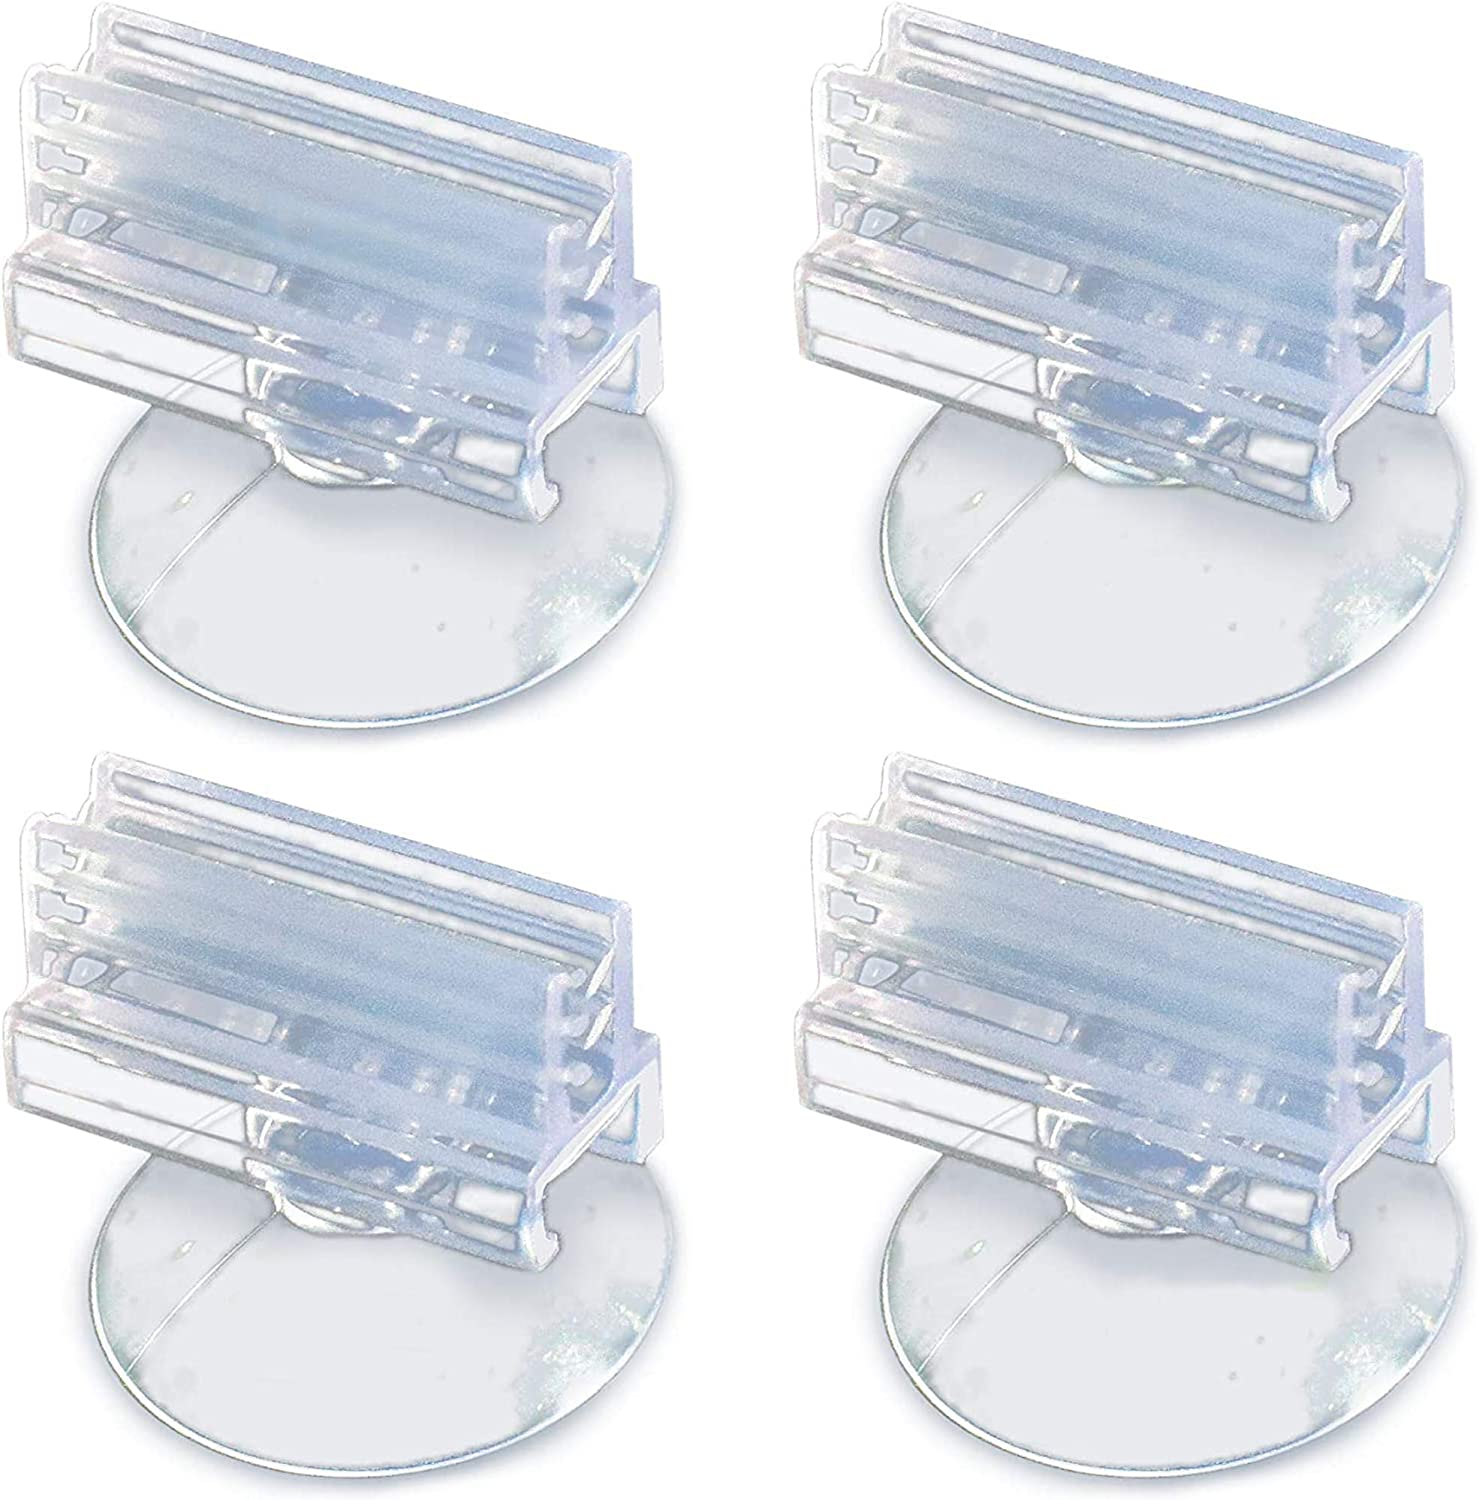 JOR Betta Bed Suction Cups, Transparent Color, Soft Tooth Clip That Firmly Holds Aquarium Hammock, Functions as Feeder with No Effect on Live Plants & Animals, 4 pcs. per Pack